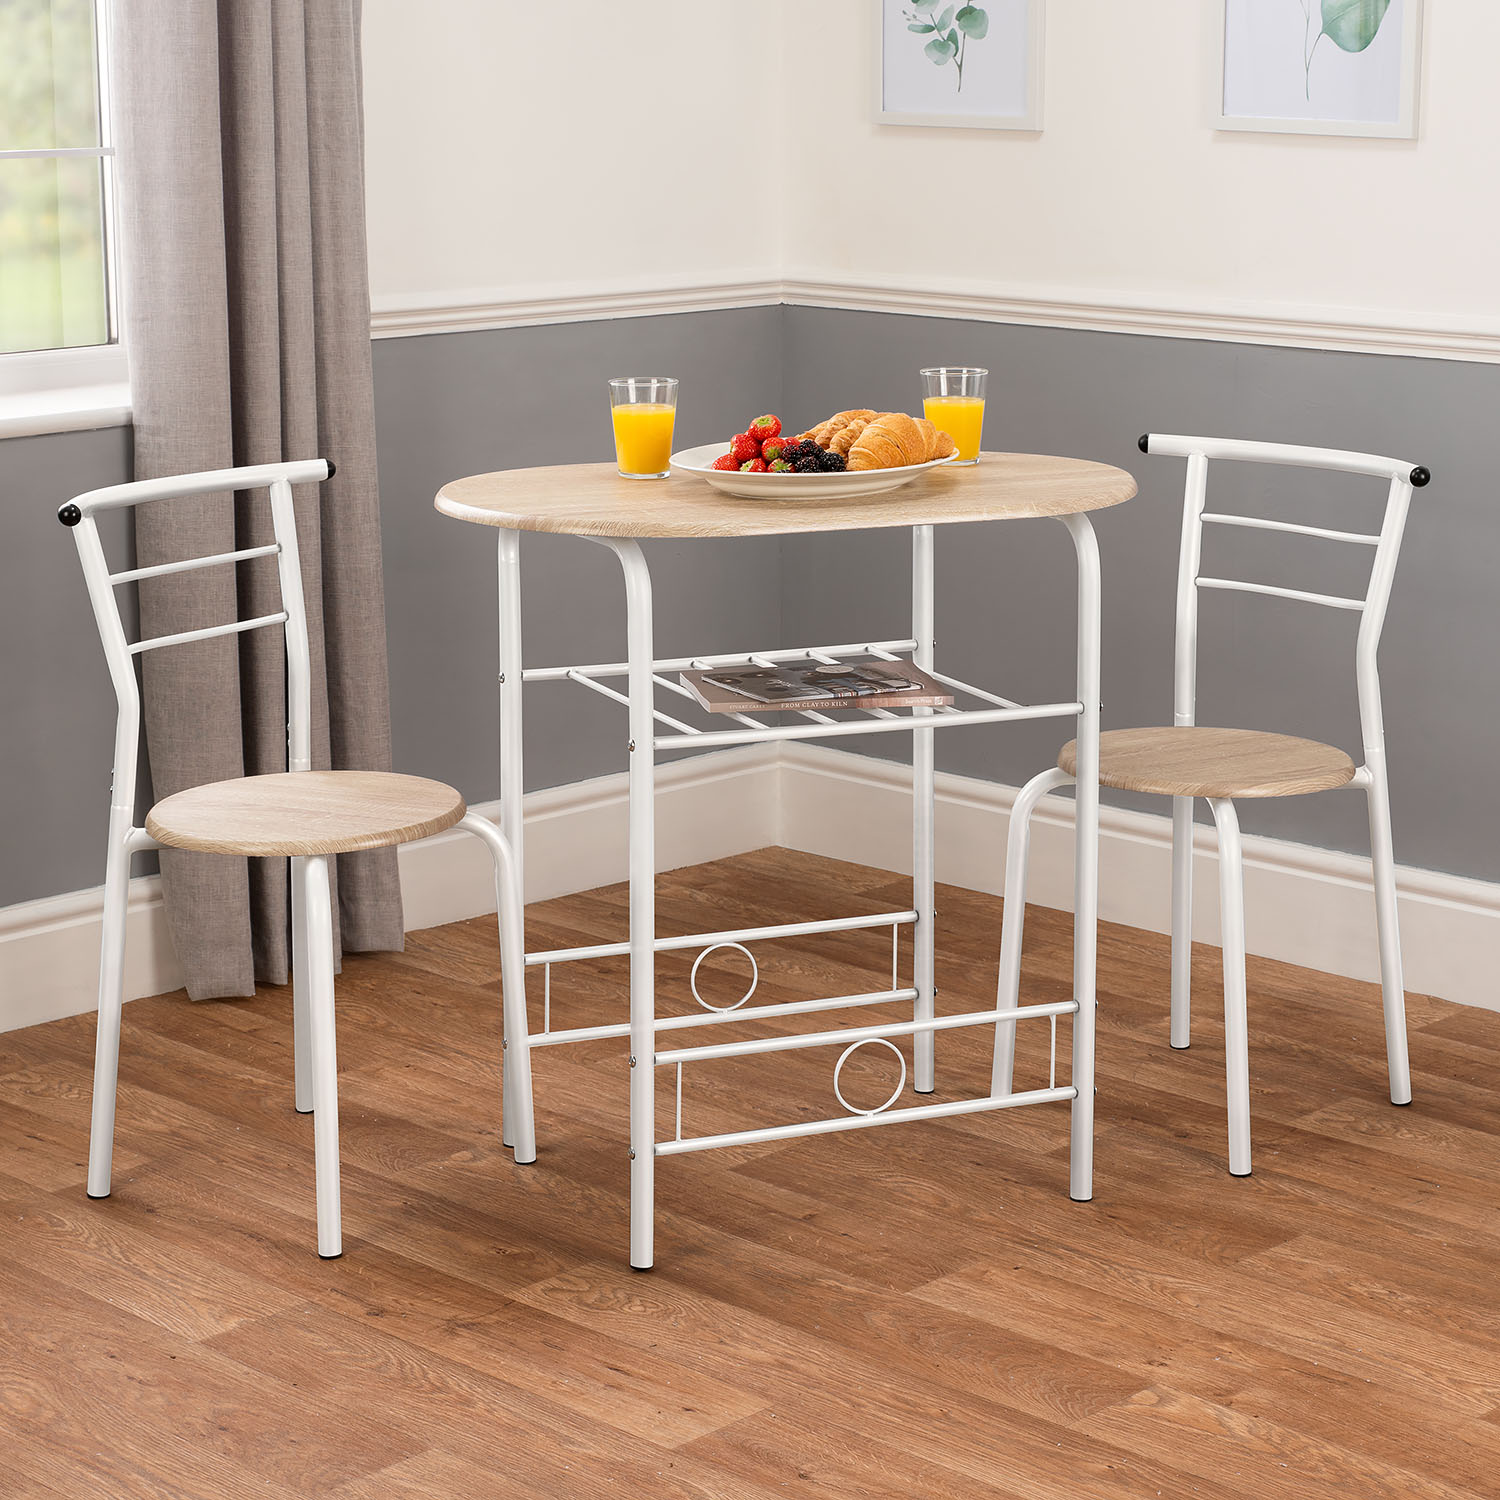 Image of 3 Piece Breakfast Table Set - White